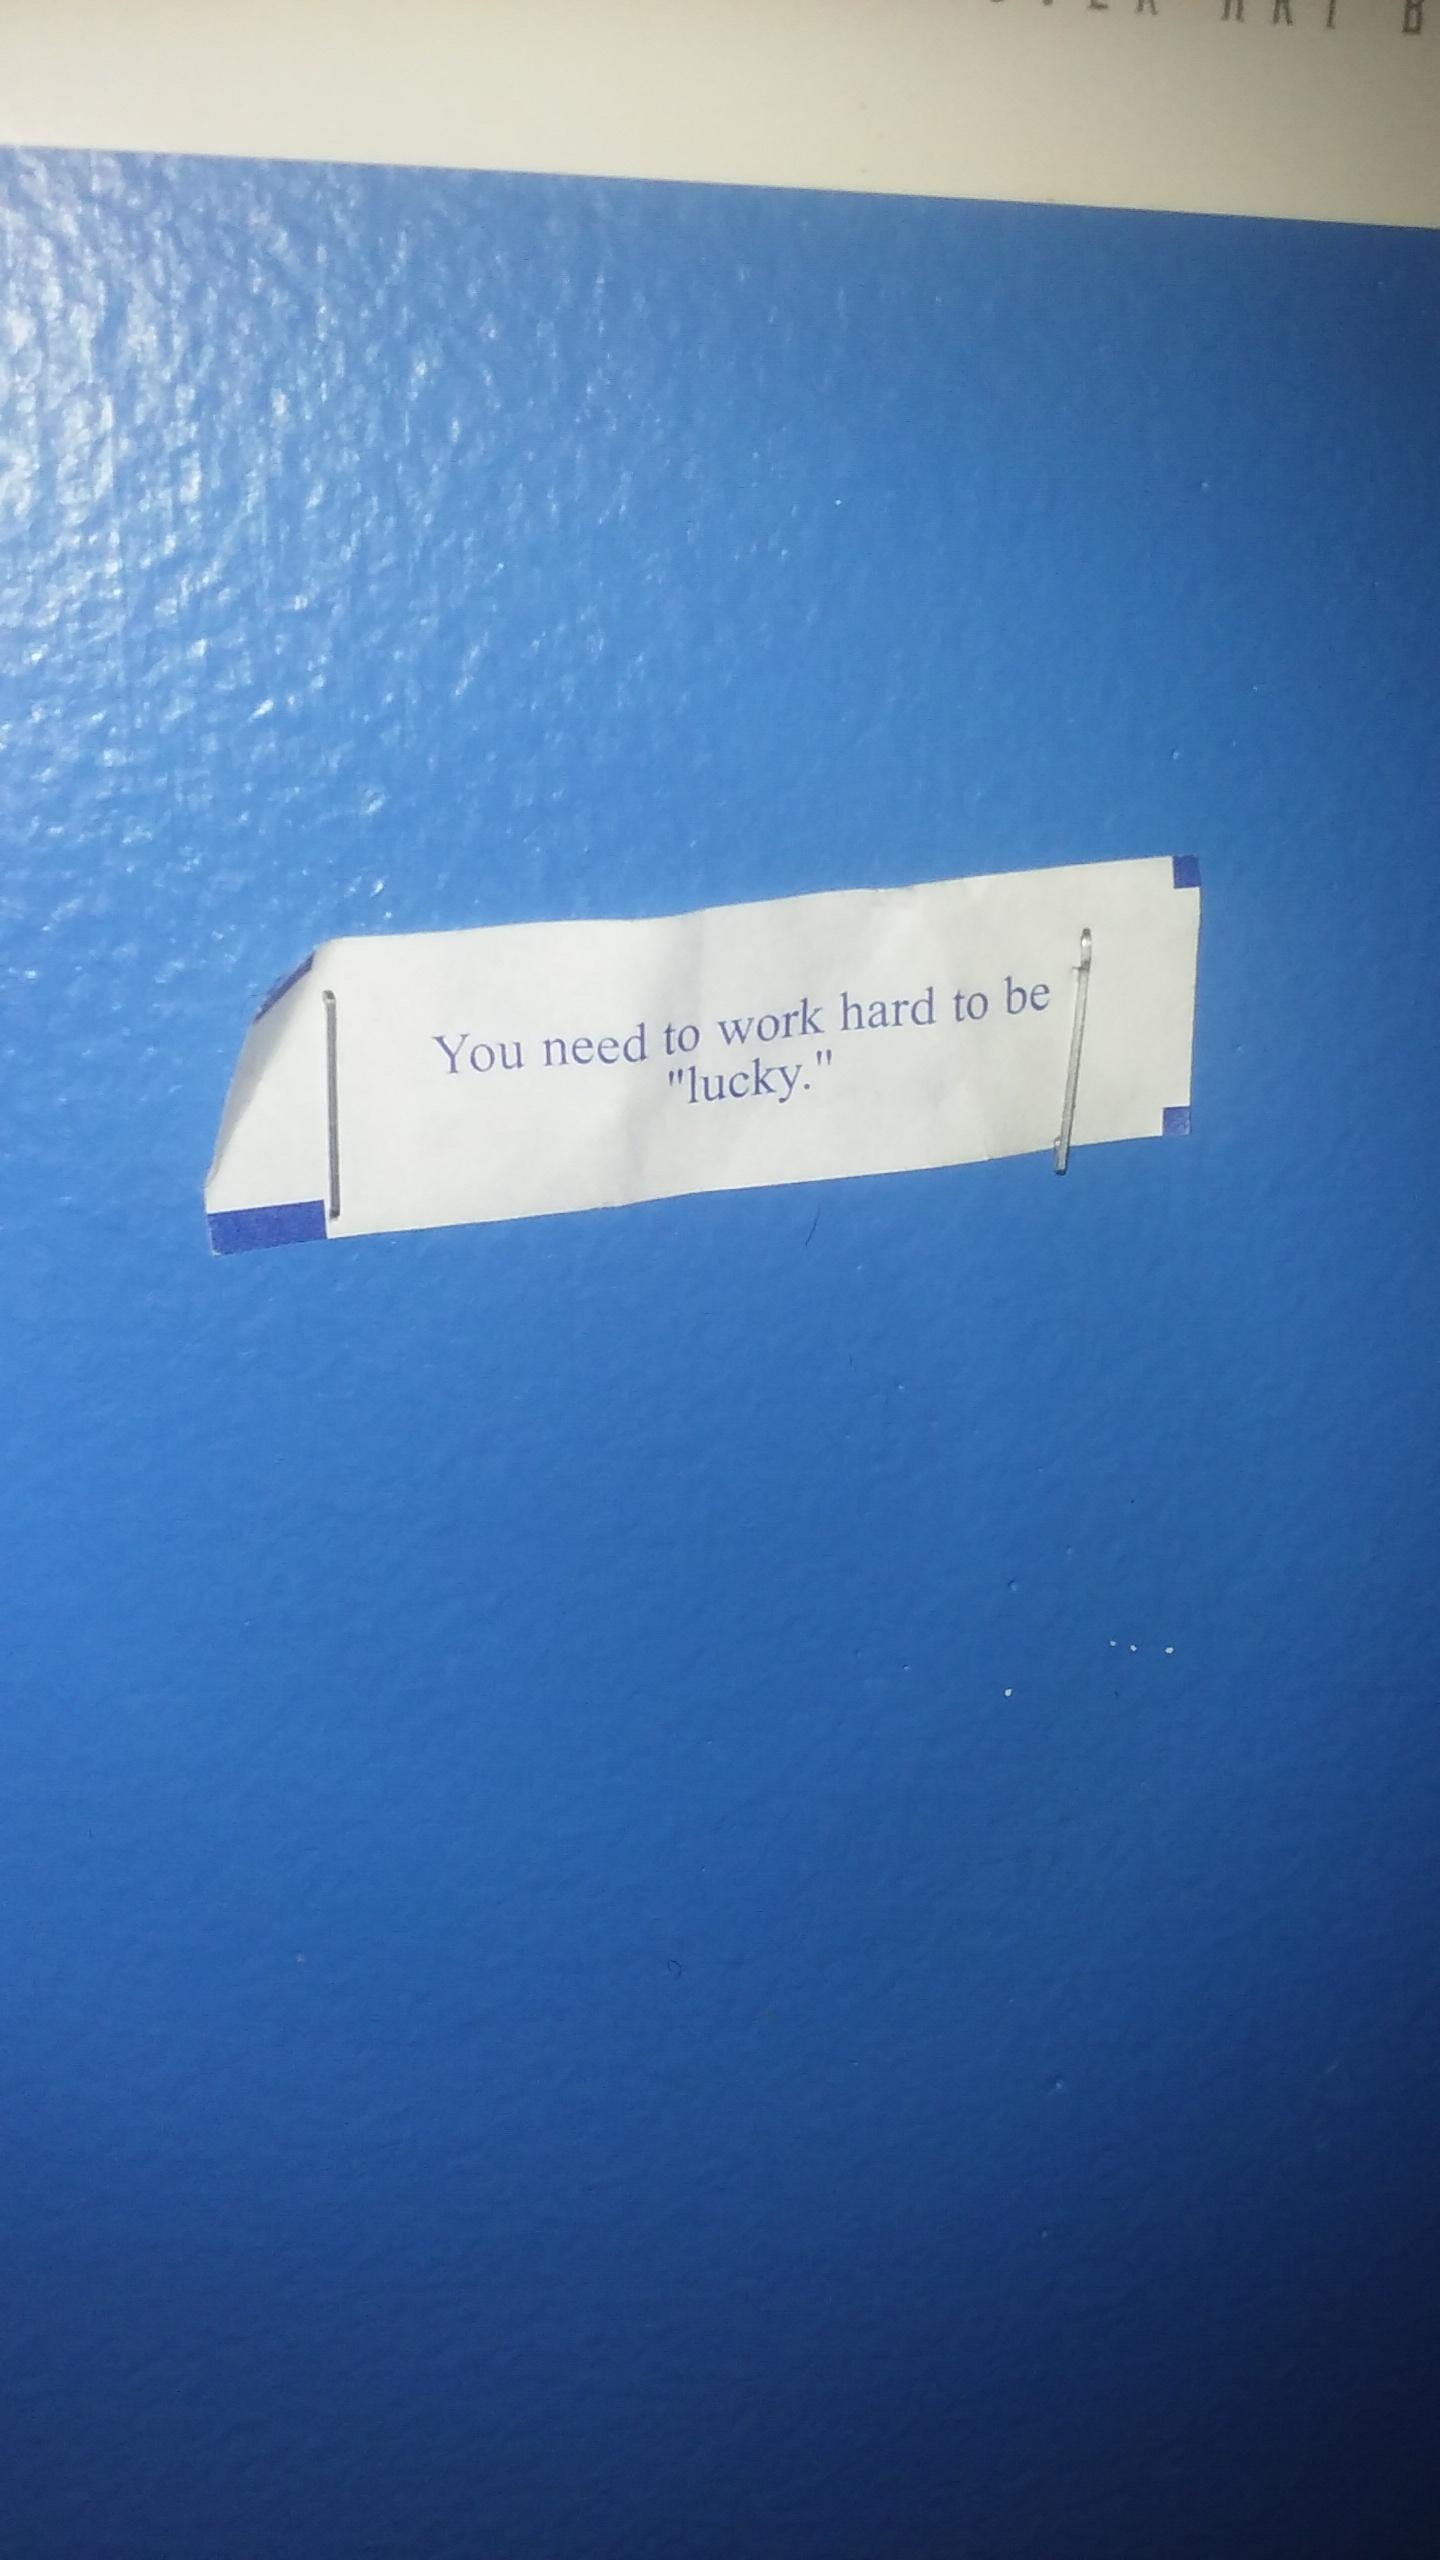 [IMAGE] stapled this to my wall a few months ago. Thought it would fit here